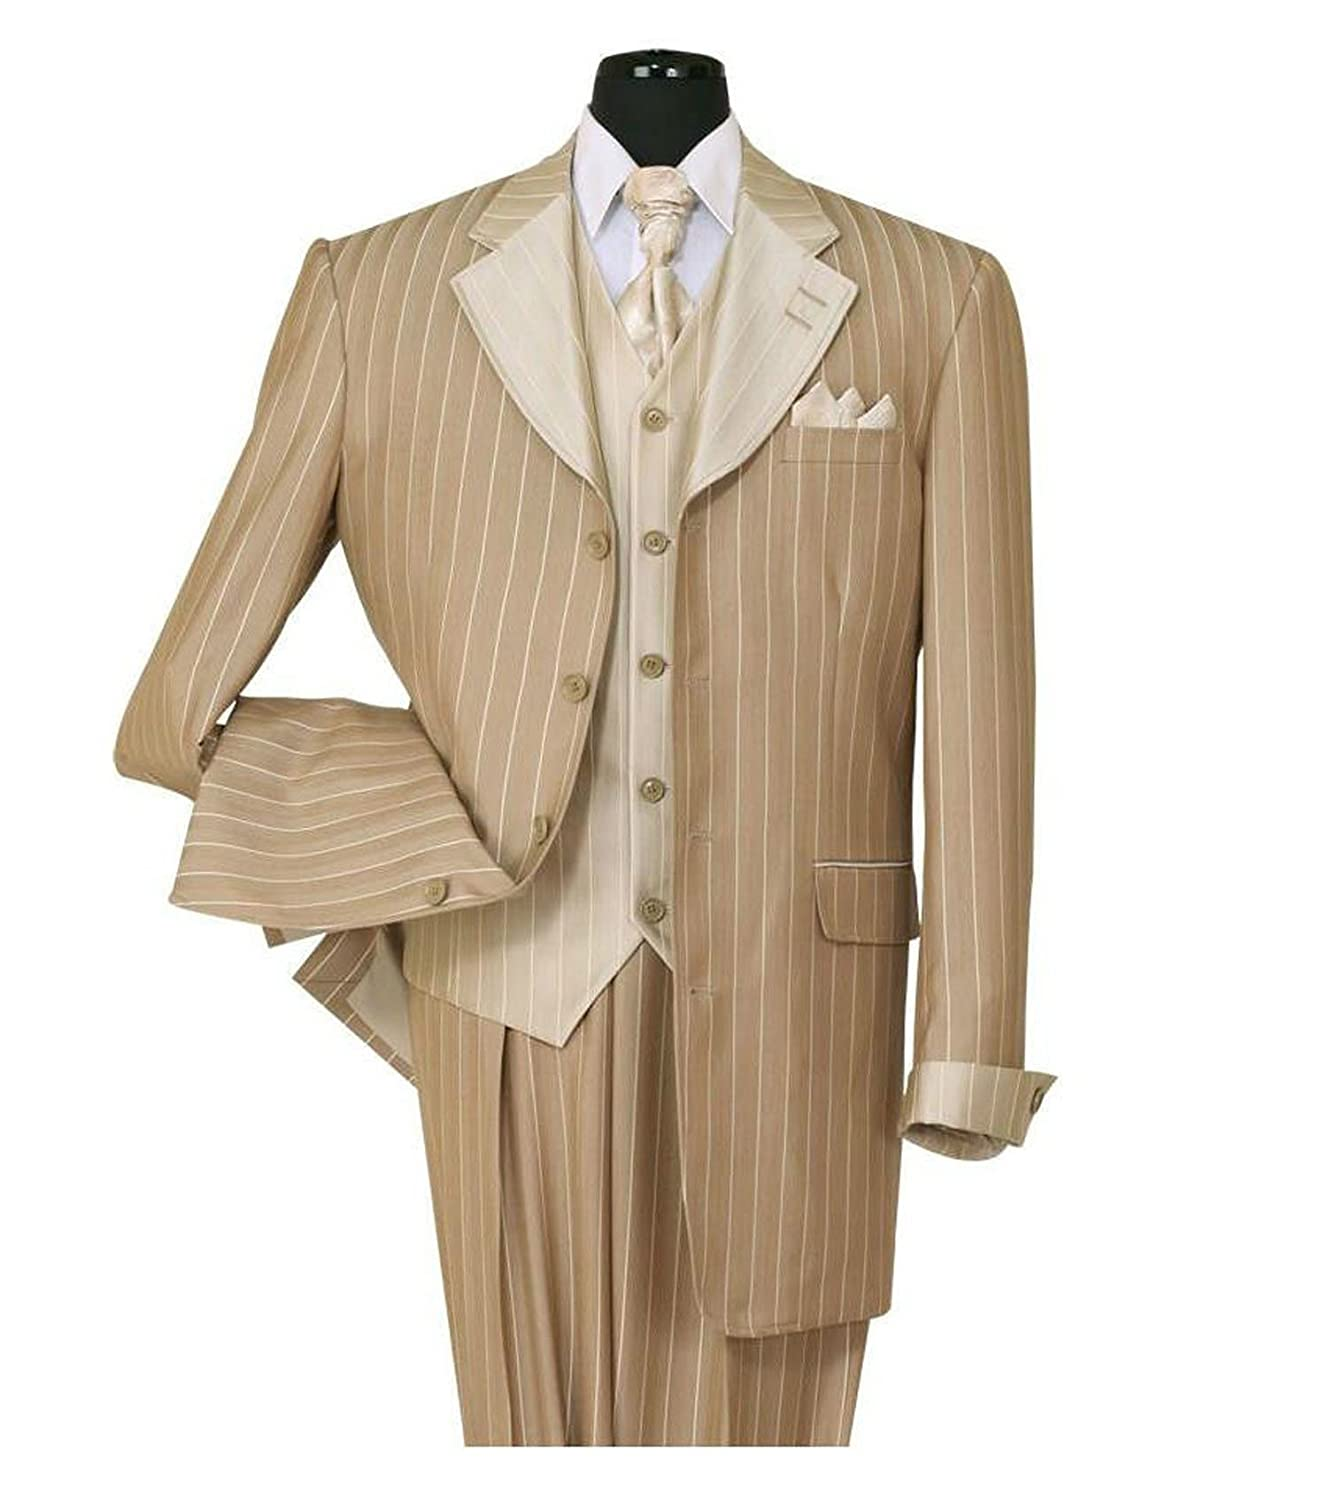 1940s Men's Suit History and Styling Tips Milano Moda Pinestripe Fashion Suit with Contrast Collar Cuffs & Vest  4 Colors  AT vintagedancer.com